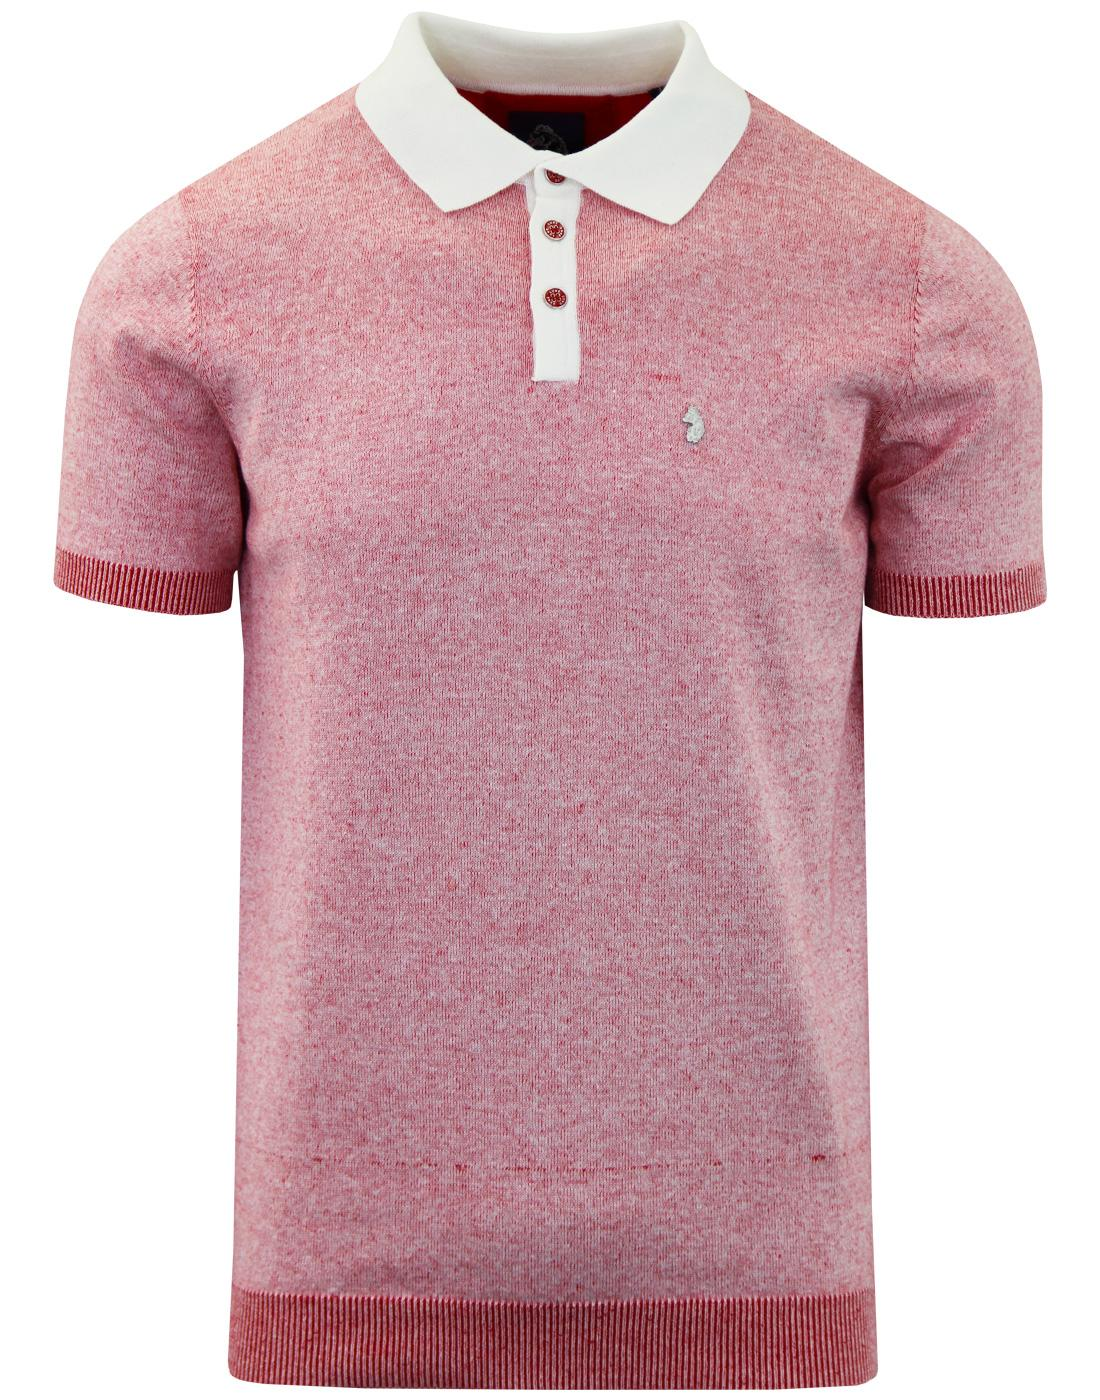 Plutonium LUKE Mod Marl Knit Panel Polo Top RED